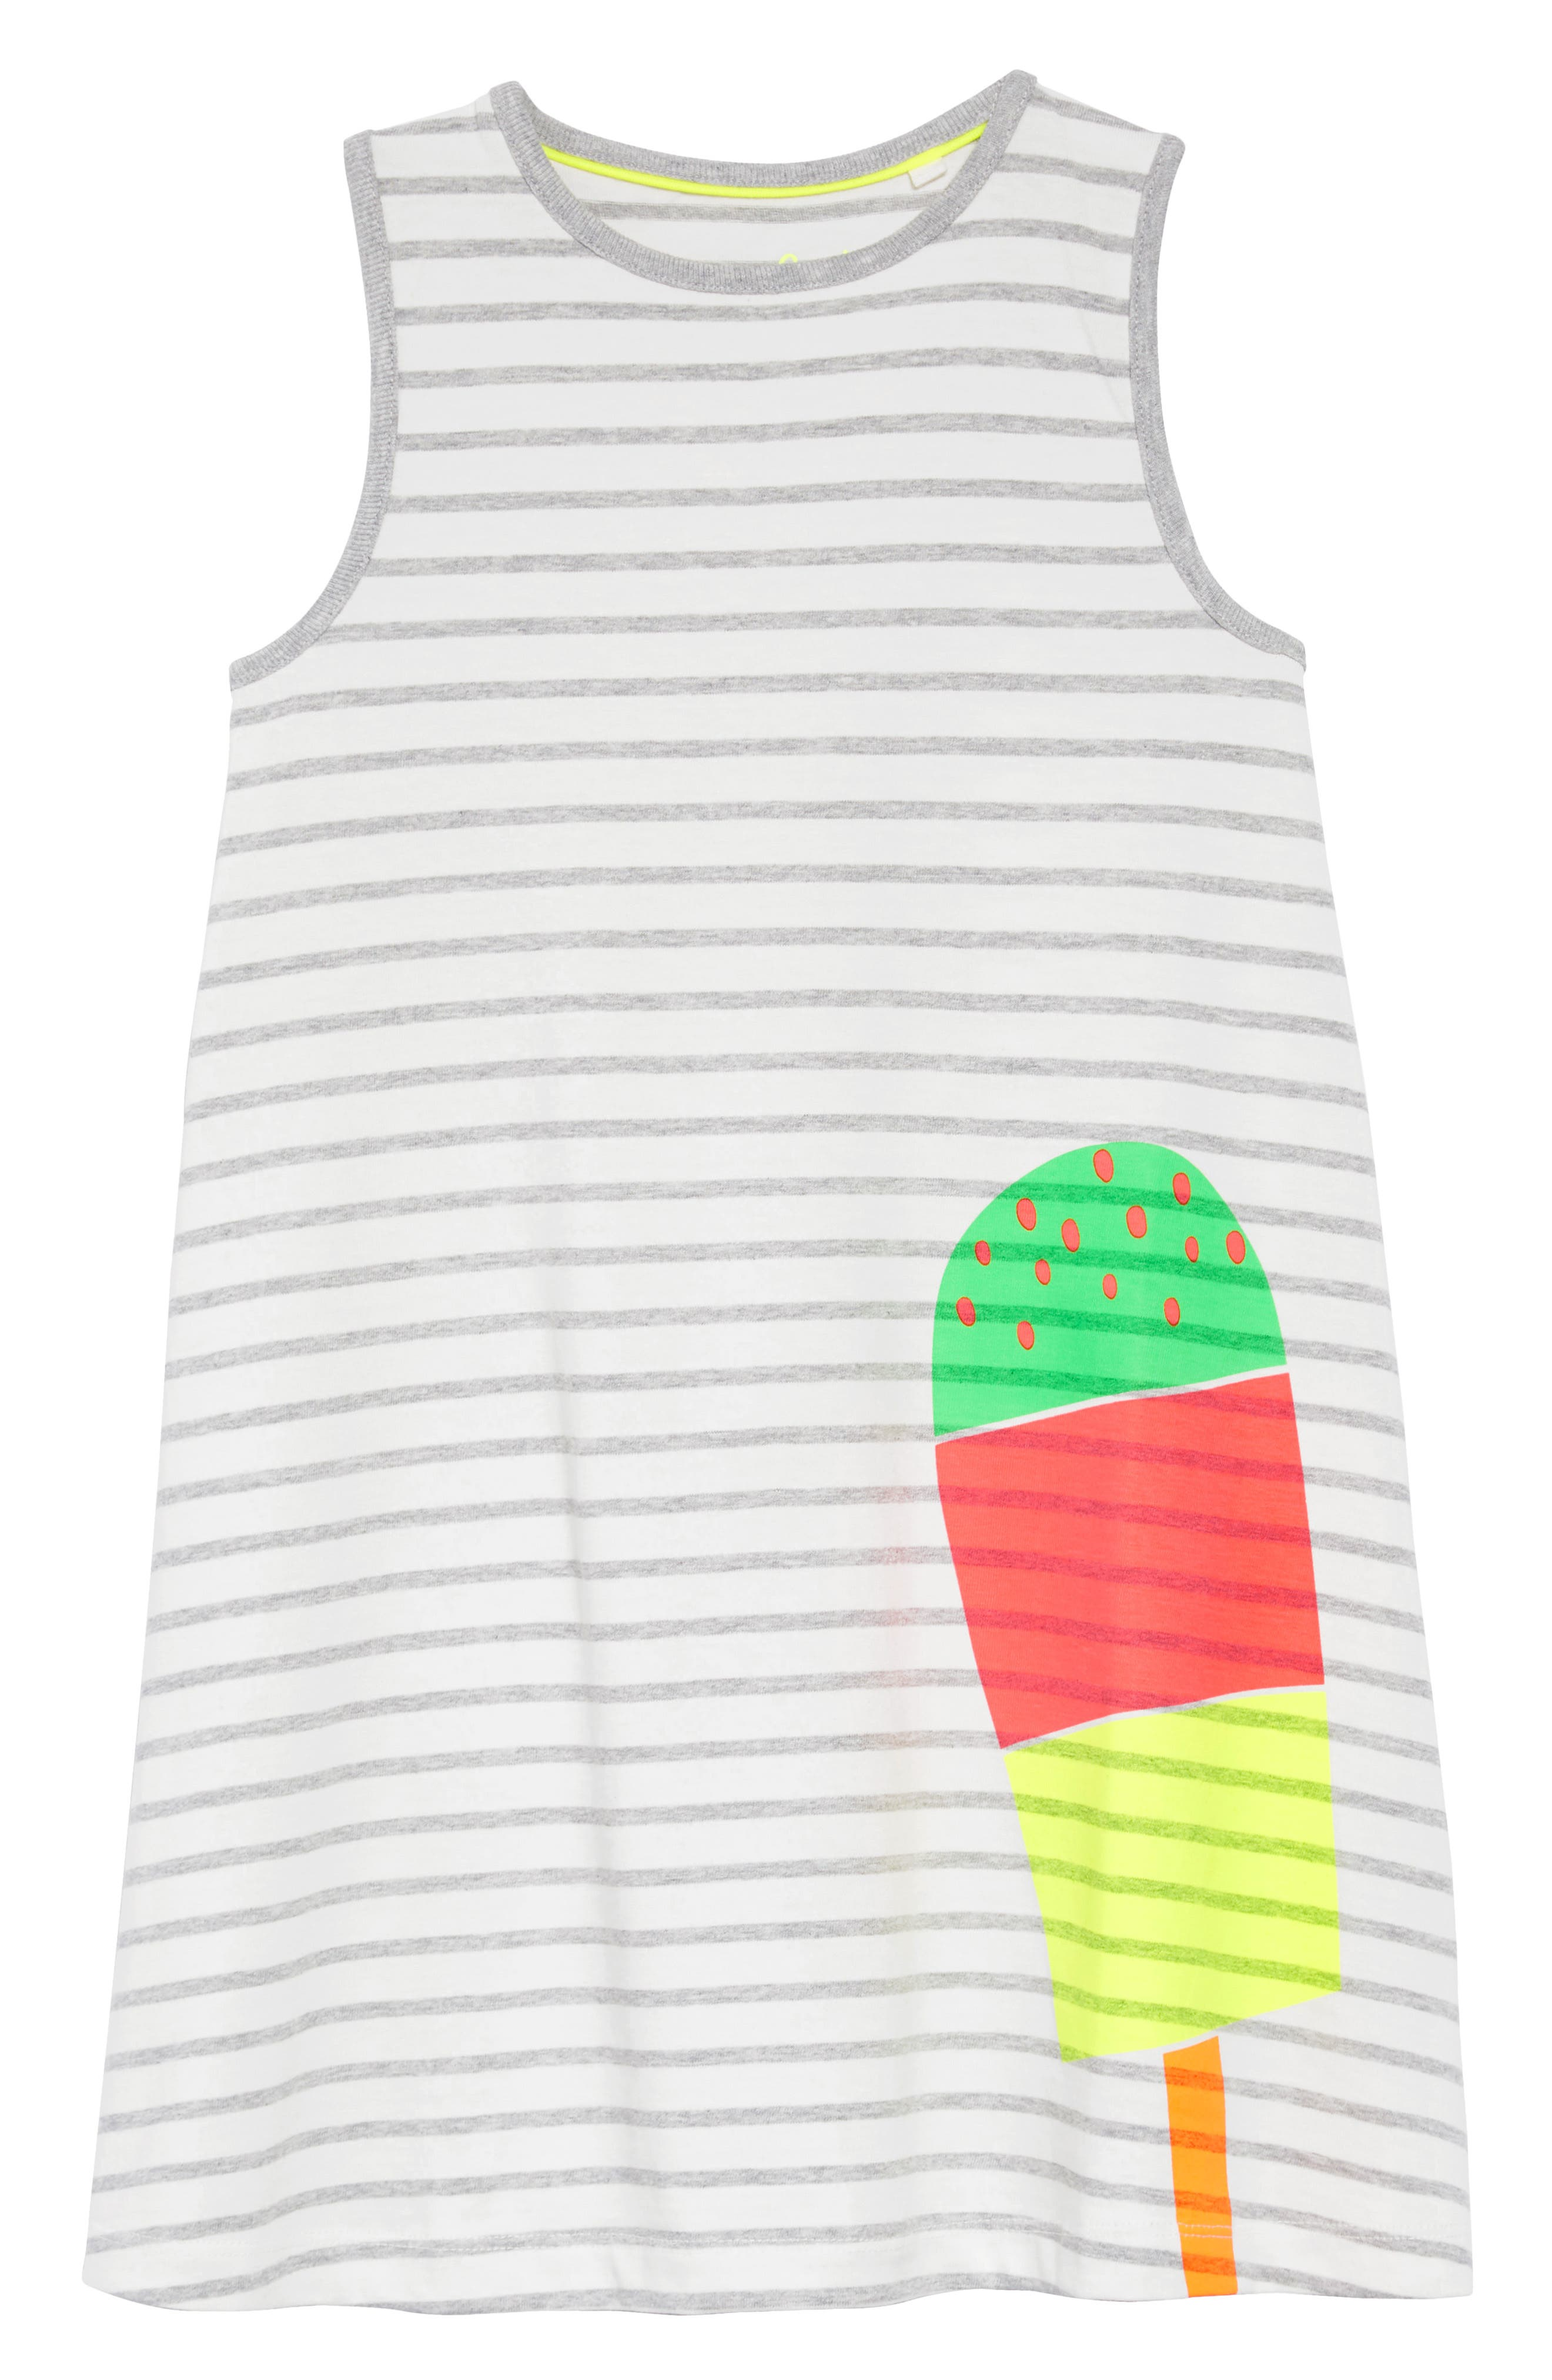 Vacation Appliqué Dress,                             Main thumbnail 1, color,                             Ivory/ Grey Marl Stripe